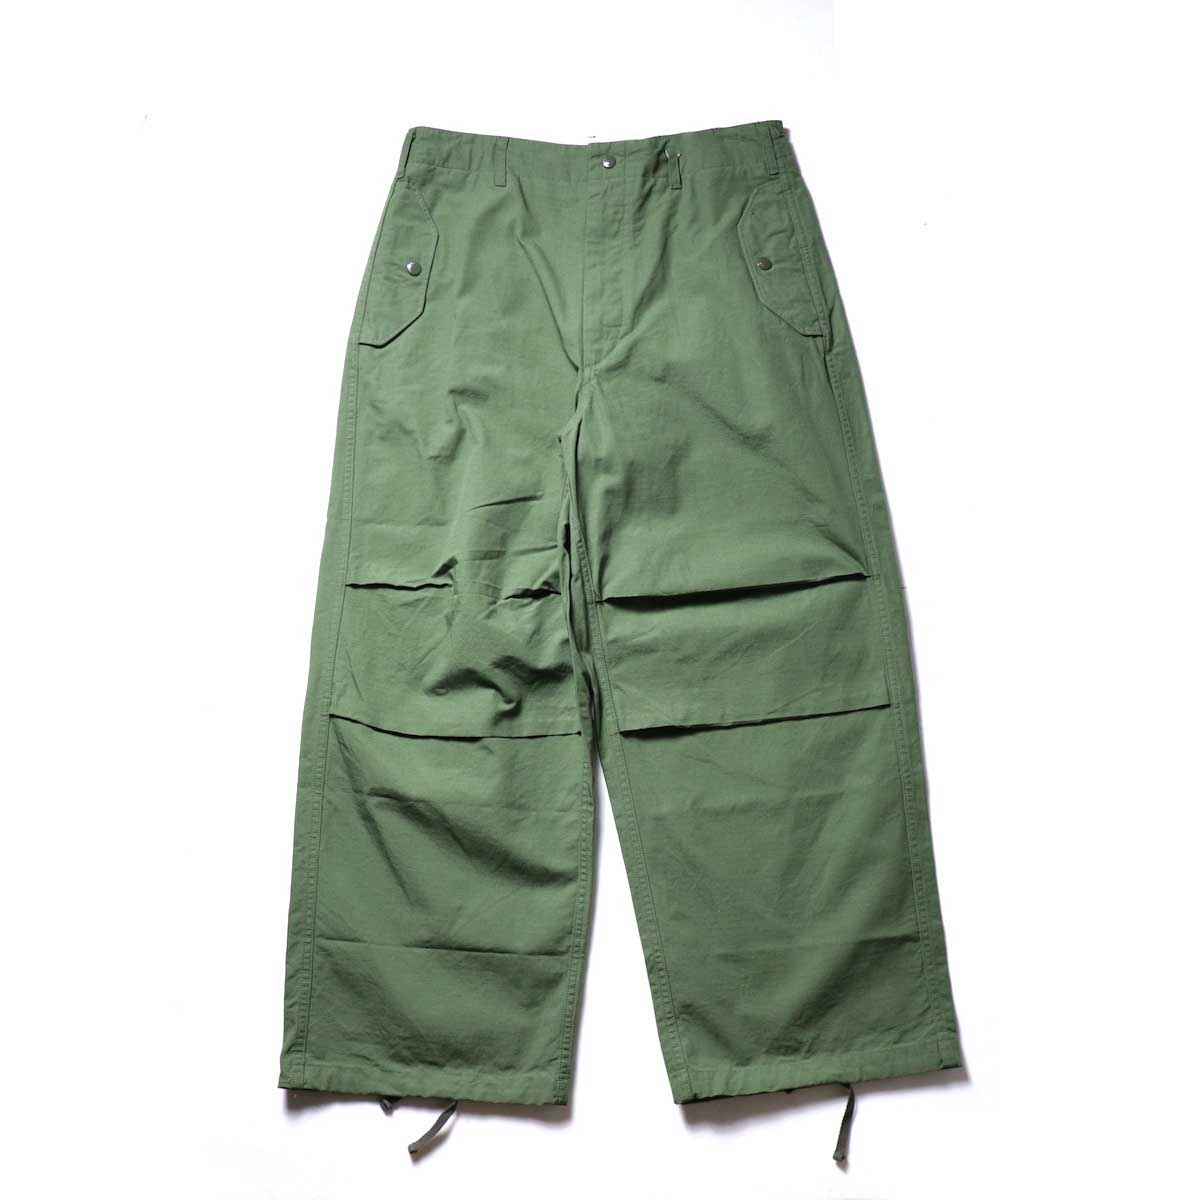 Engineered Garments / Over Pant -Cotton Ripstop